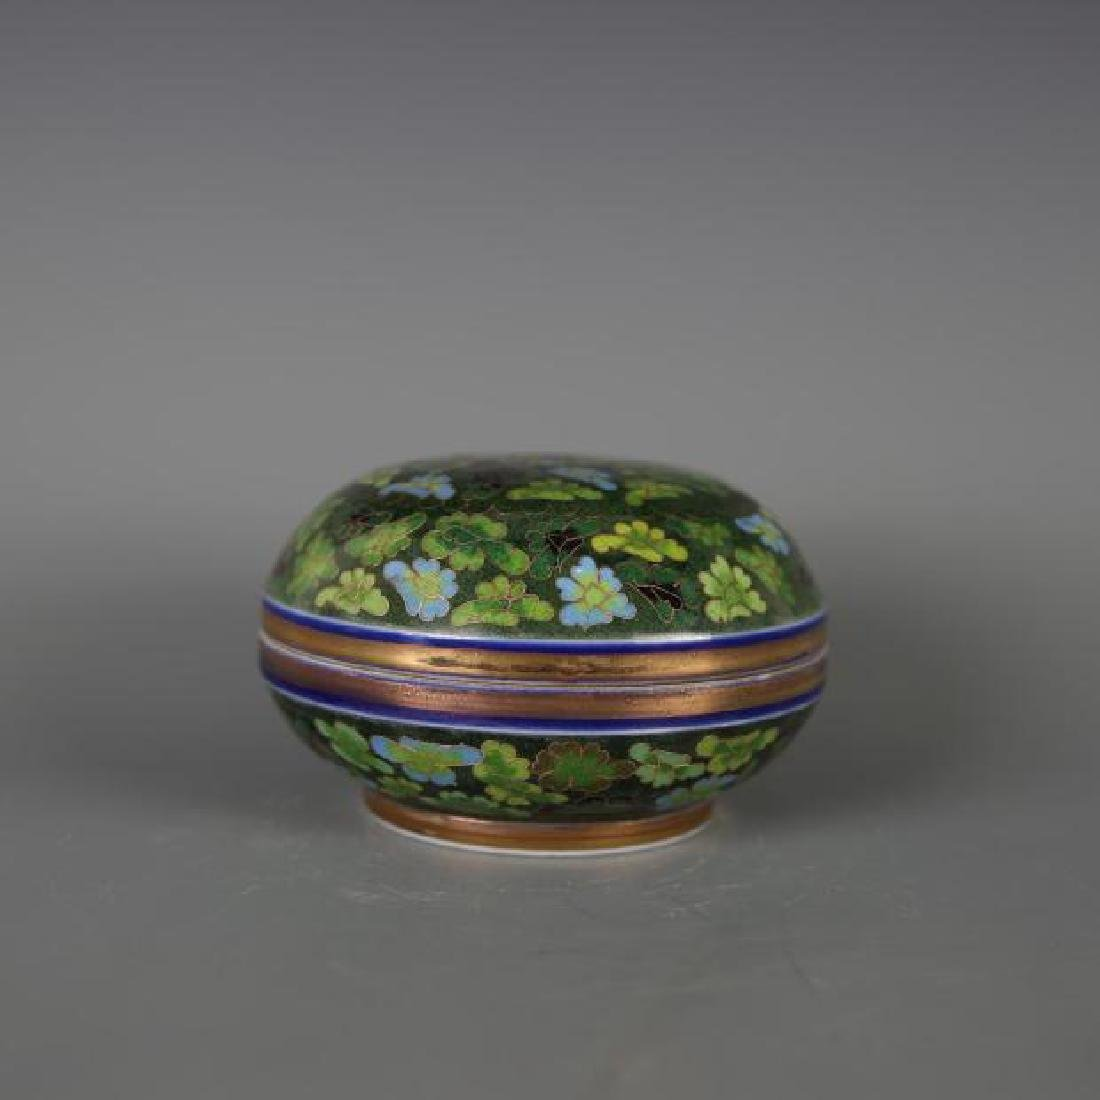 A Nice Enamel Inlaiid Porcelain Box